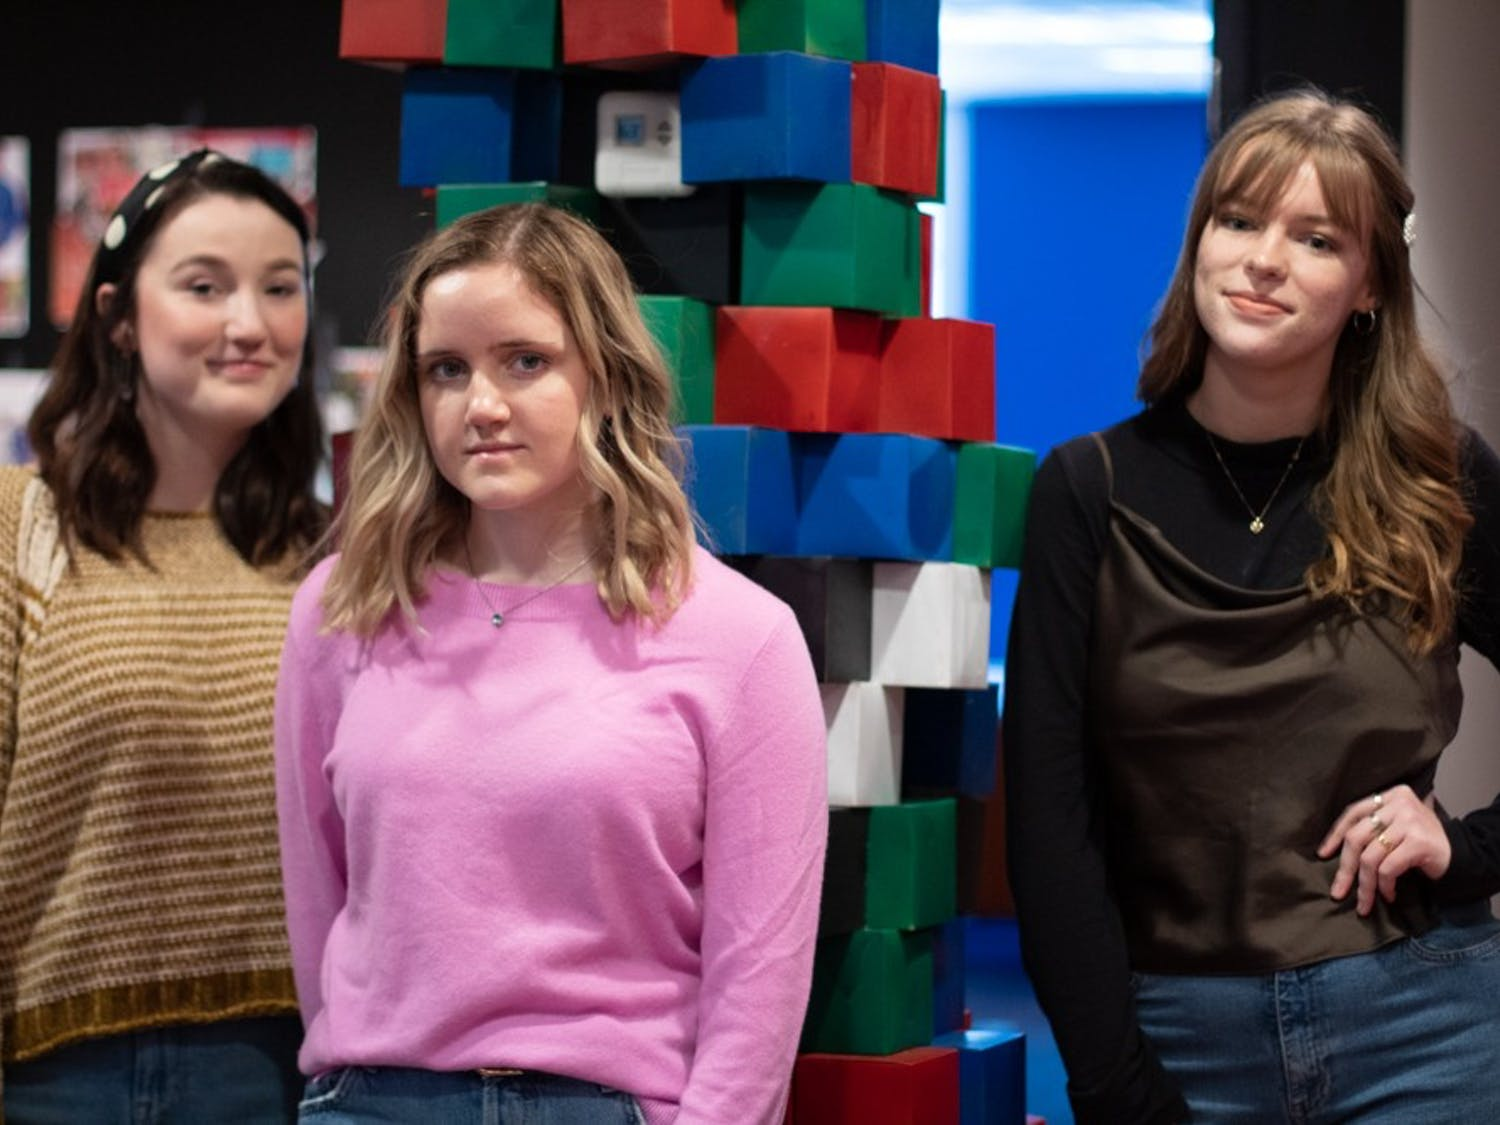 (From left) Emma Spears, copyediting director; Carly Christensen, health editor; and Chloe Williams, features co-editor for Coulture pose in the Coulture office on Sunday, Feb. 9, 2020.